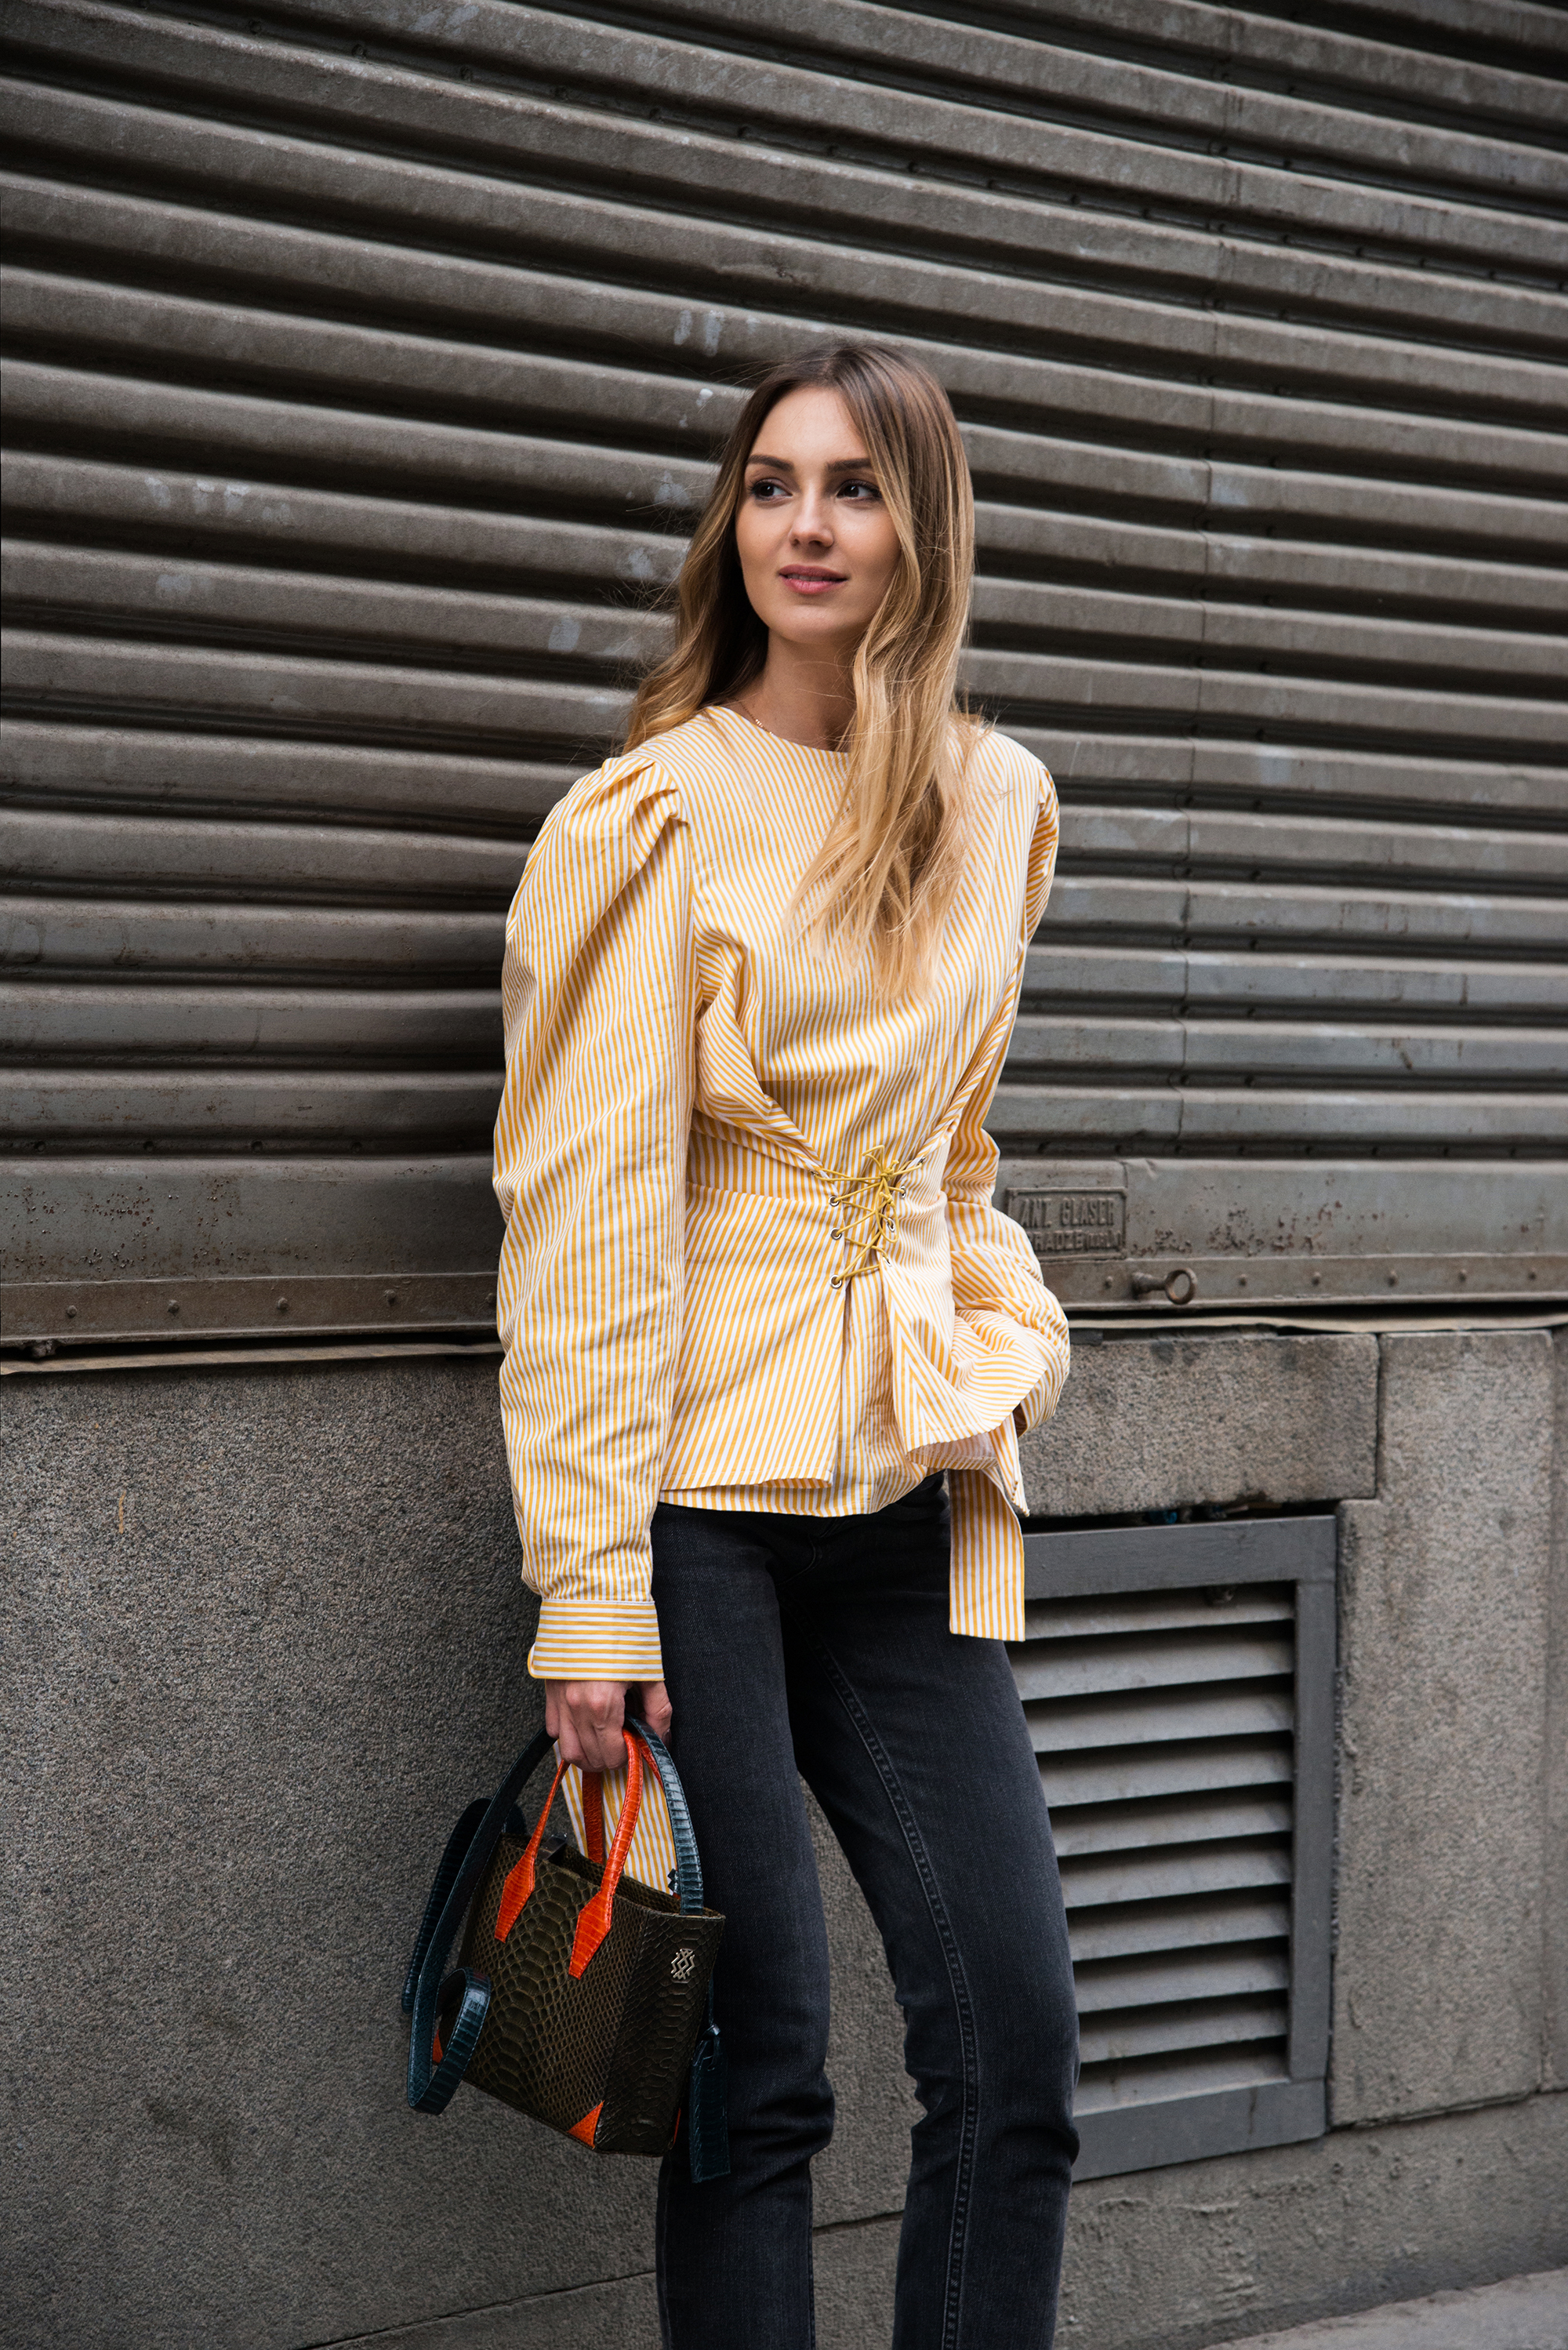 street-style-puffy-sleeves-corset-top-yellow